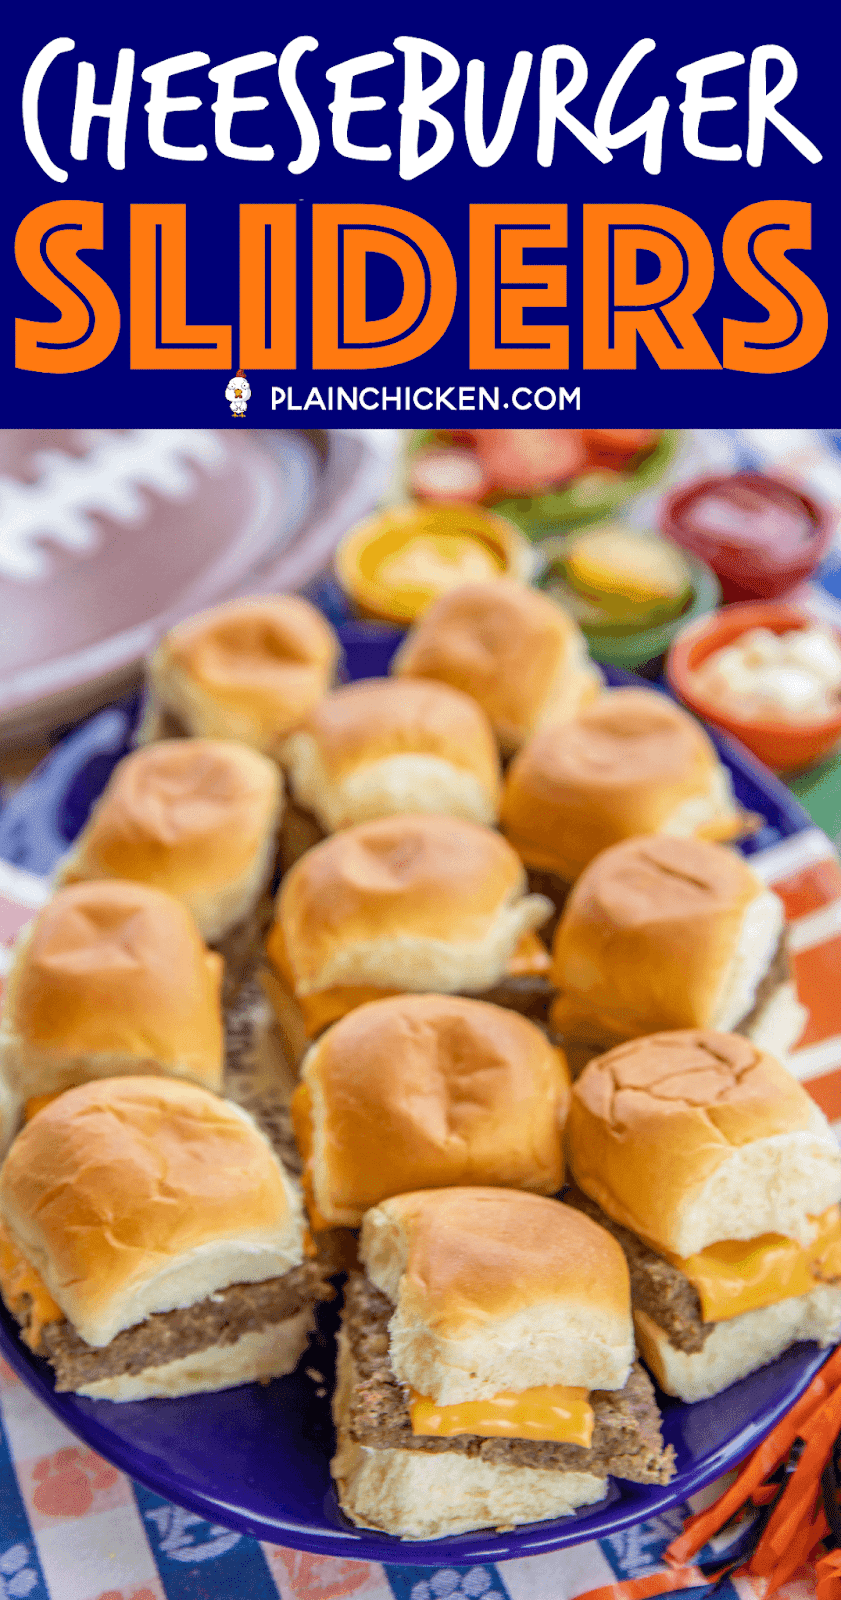 Cheeseburger Sliders - only 5 ingredients!! Ground beef, sausage, ranch dressing mix, cheese and buns. PERFECT for tailgating and parties!! Can make ahead of time and heat in the oven or on top of the grill when ready to serve. Top with your favorite burger toppings - lettuce, tomato, bacon, pickles, mayo, ketchup, mustard. SO easy and SOOOO good!!! Seriously our favorite burger recipe! #tailgating #burgers #beef #partyfood